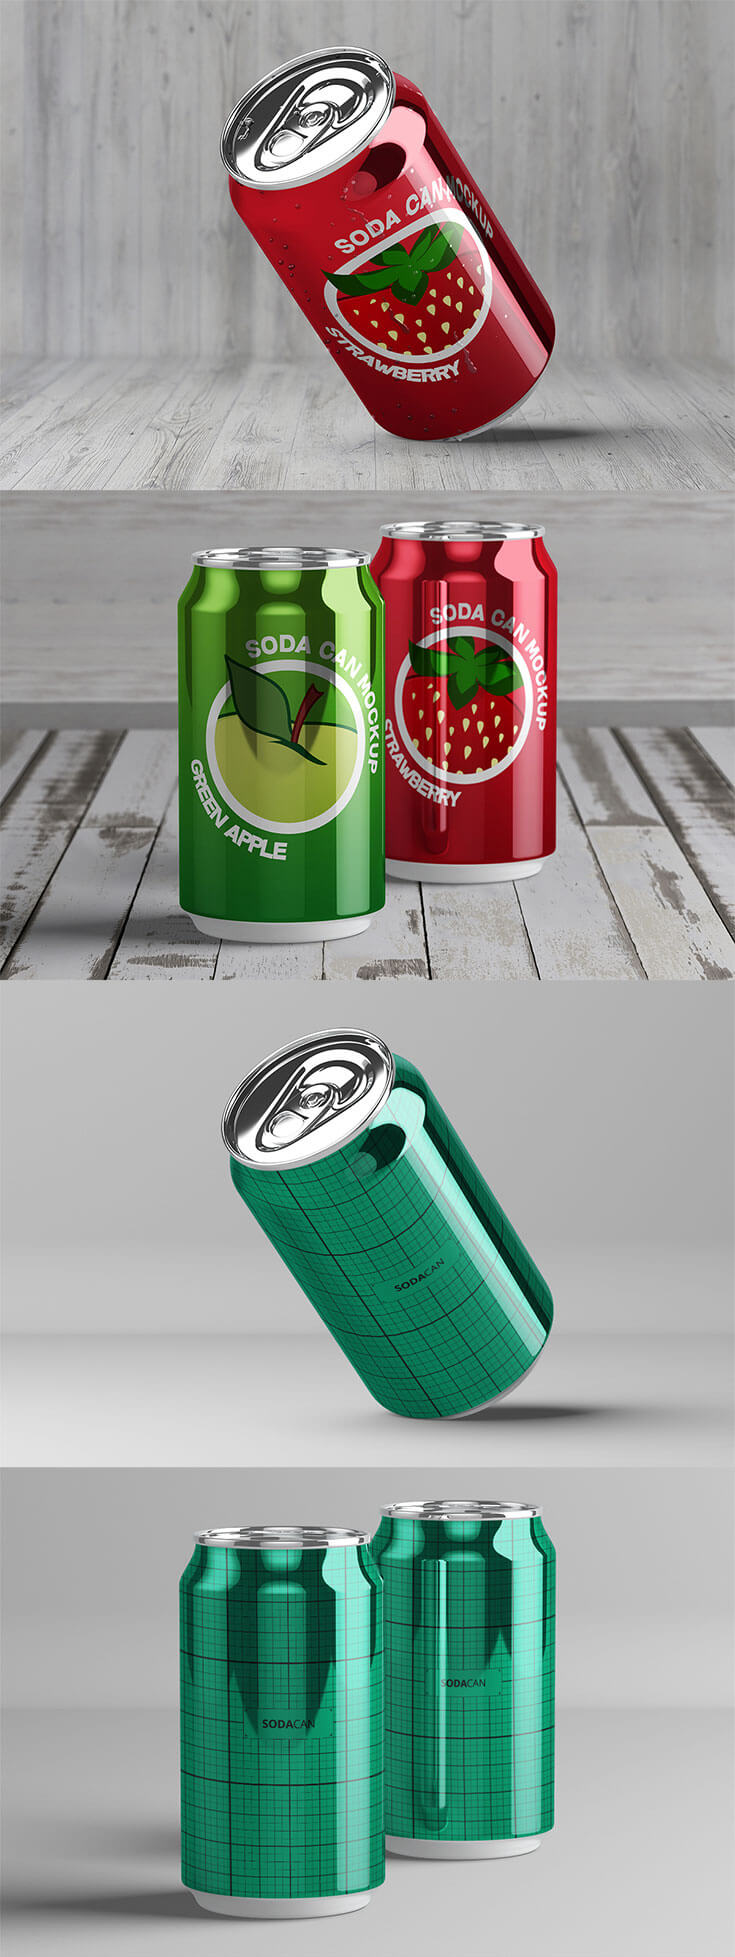 #Free Soda #Can #Mockupis a clean and minimalist Soda Can Mock-Up to showcase your design. It is available in PSD format with smart layer, fully editable and adjustable to fit your need. All elements are separated so you can tweak to make the most of this mockup.